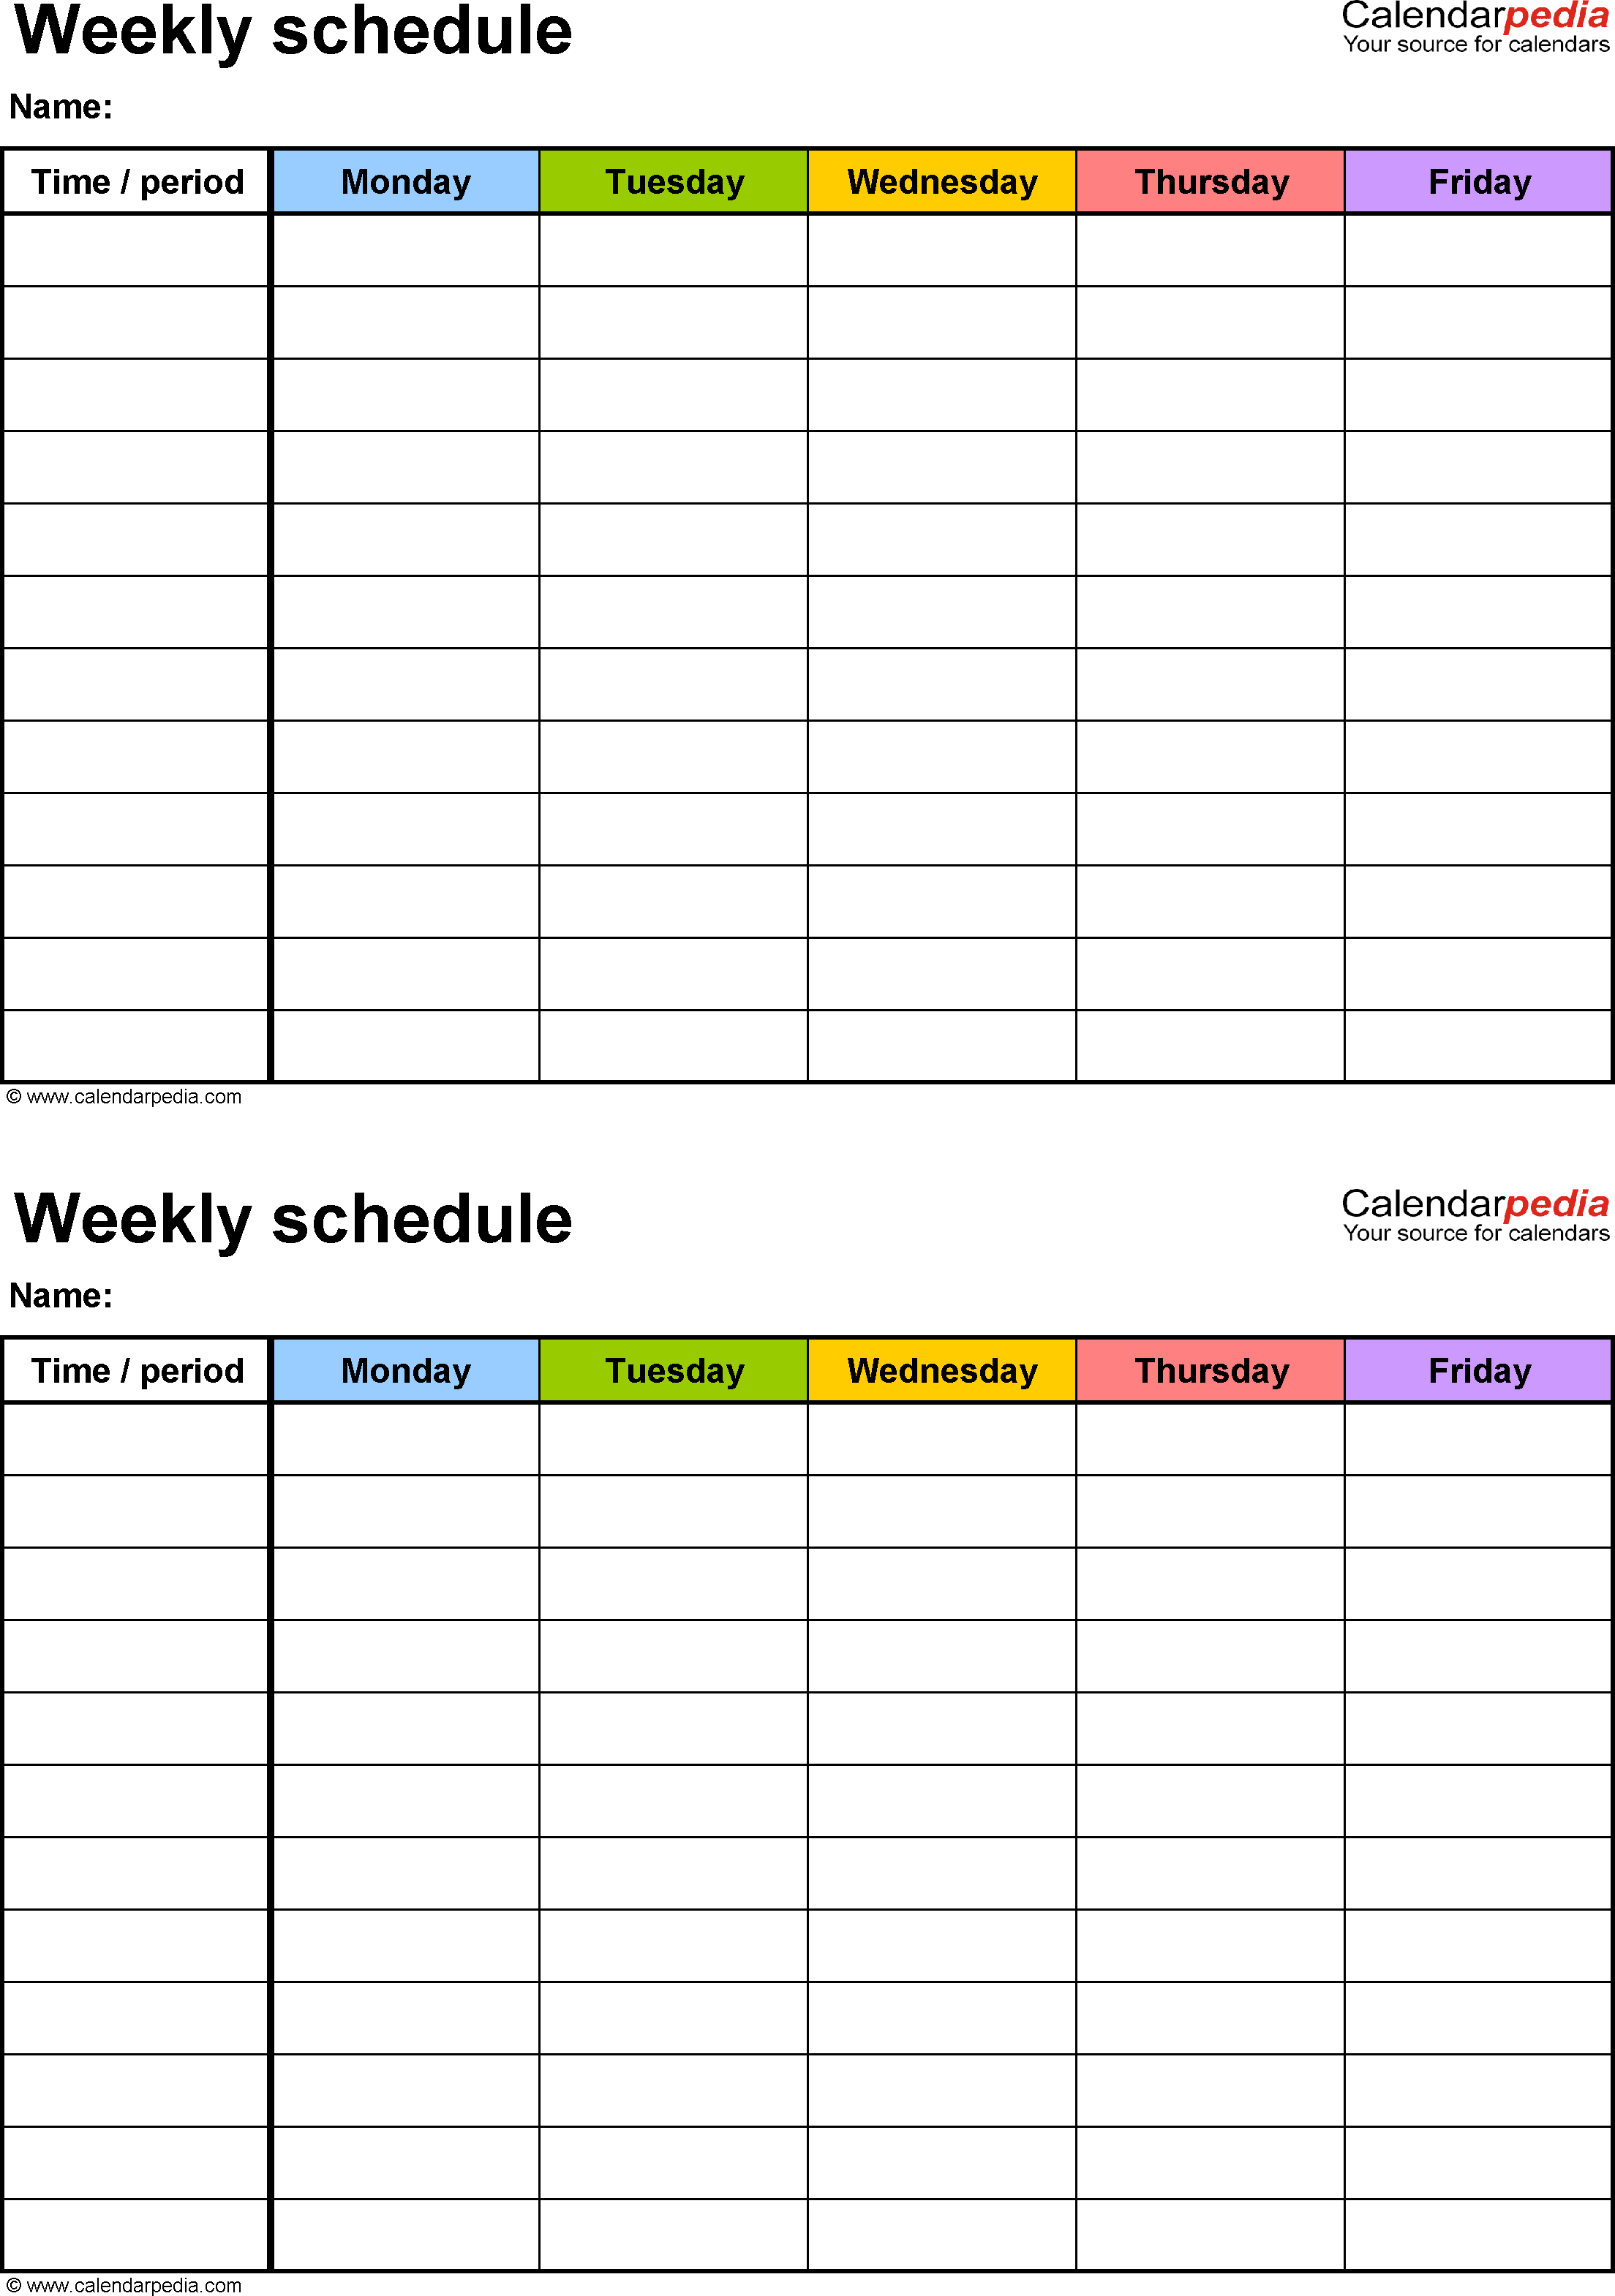 Weekly Schedule Template For Version 3 2 Schedules On